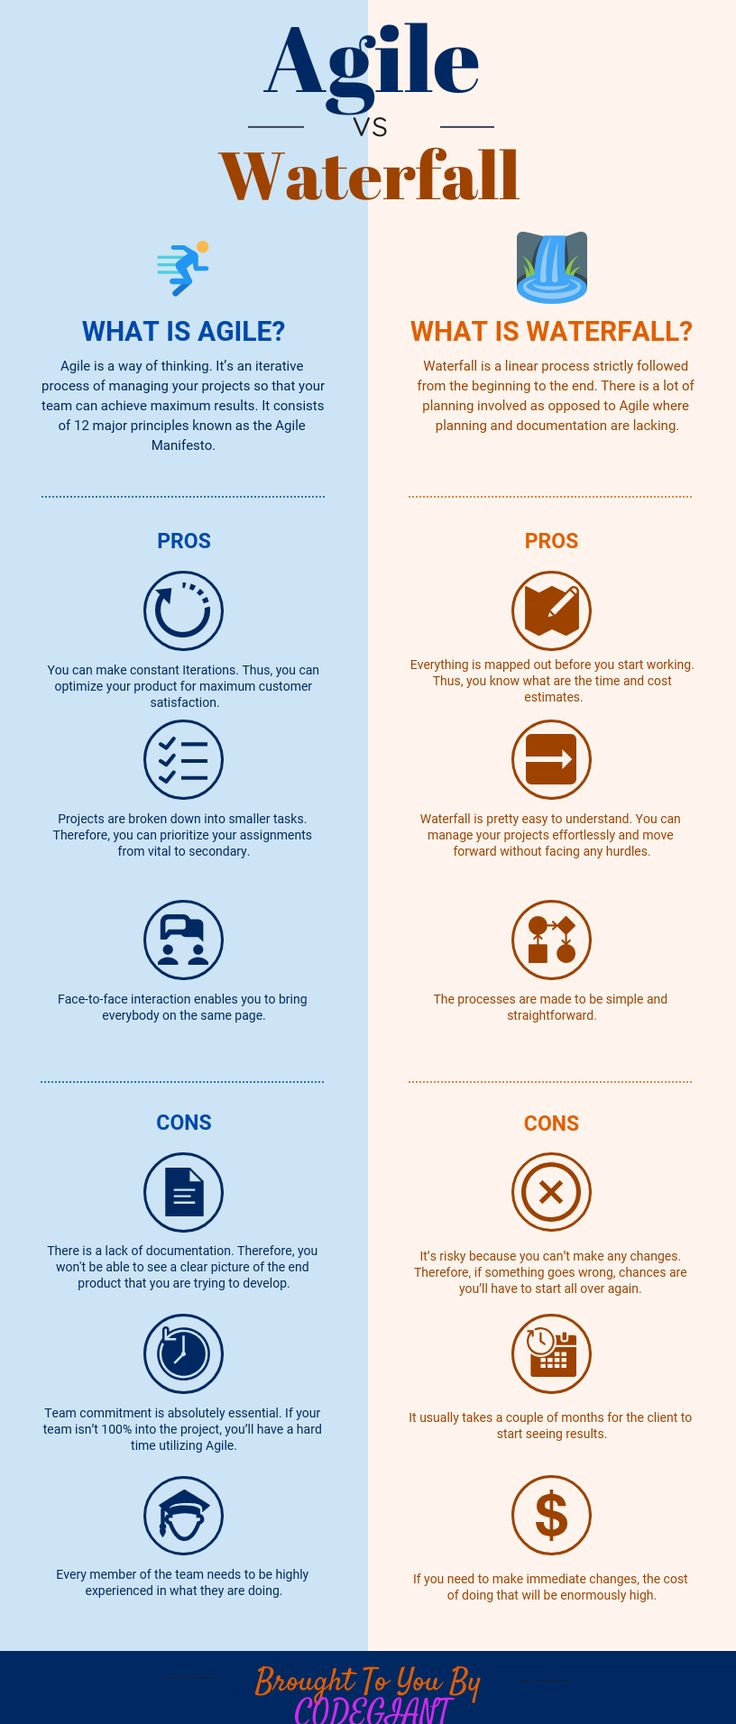 online vs in person classes pros and cons